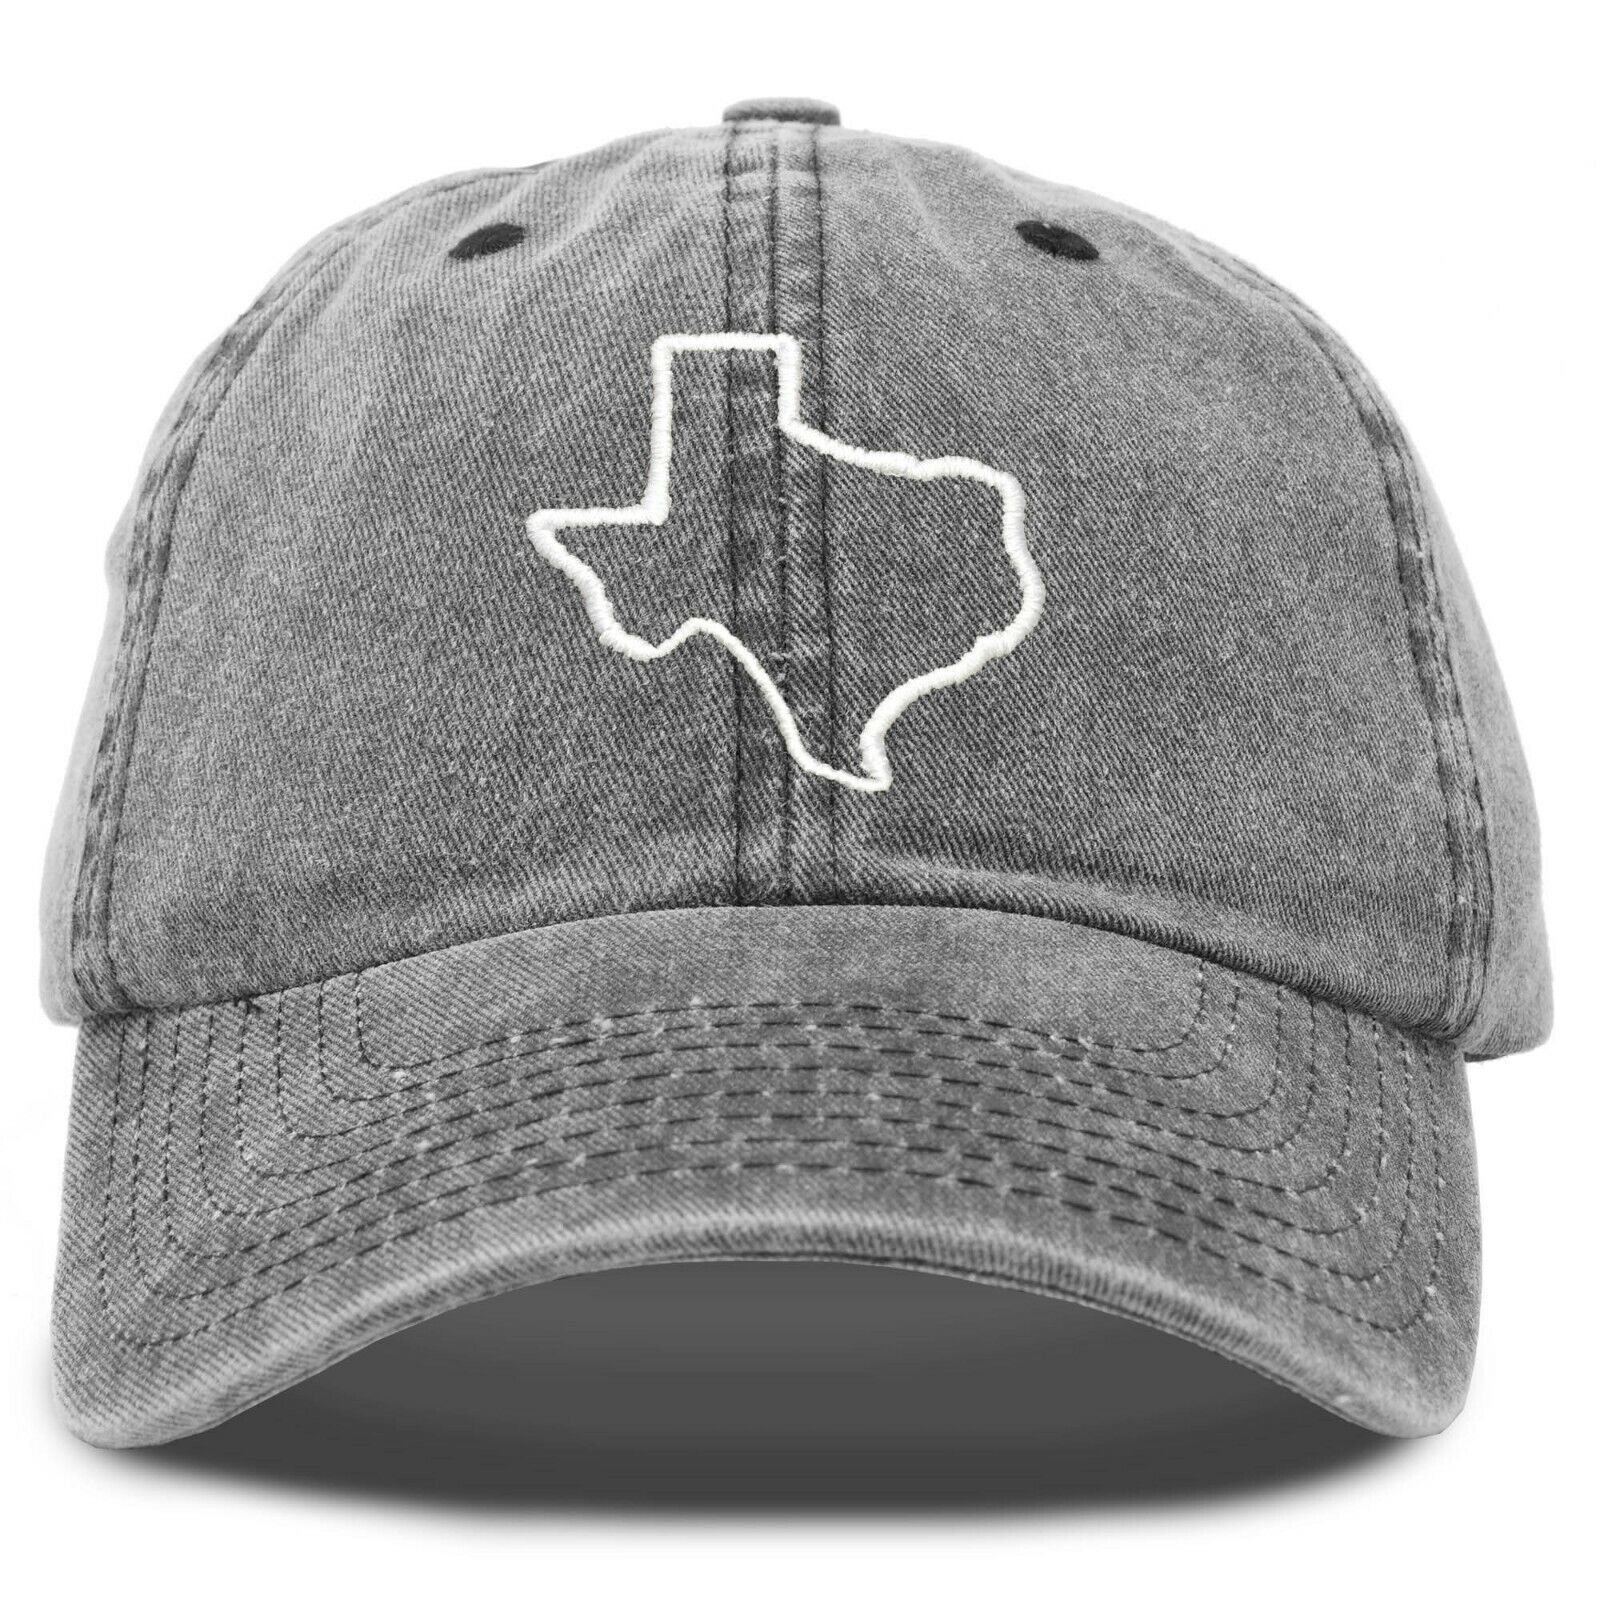 DALIX Texas Hat Lone Star State Mens Womens Baseball Cap Was